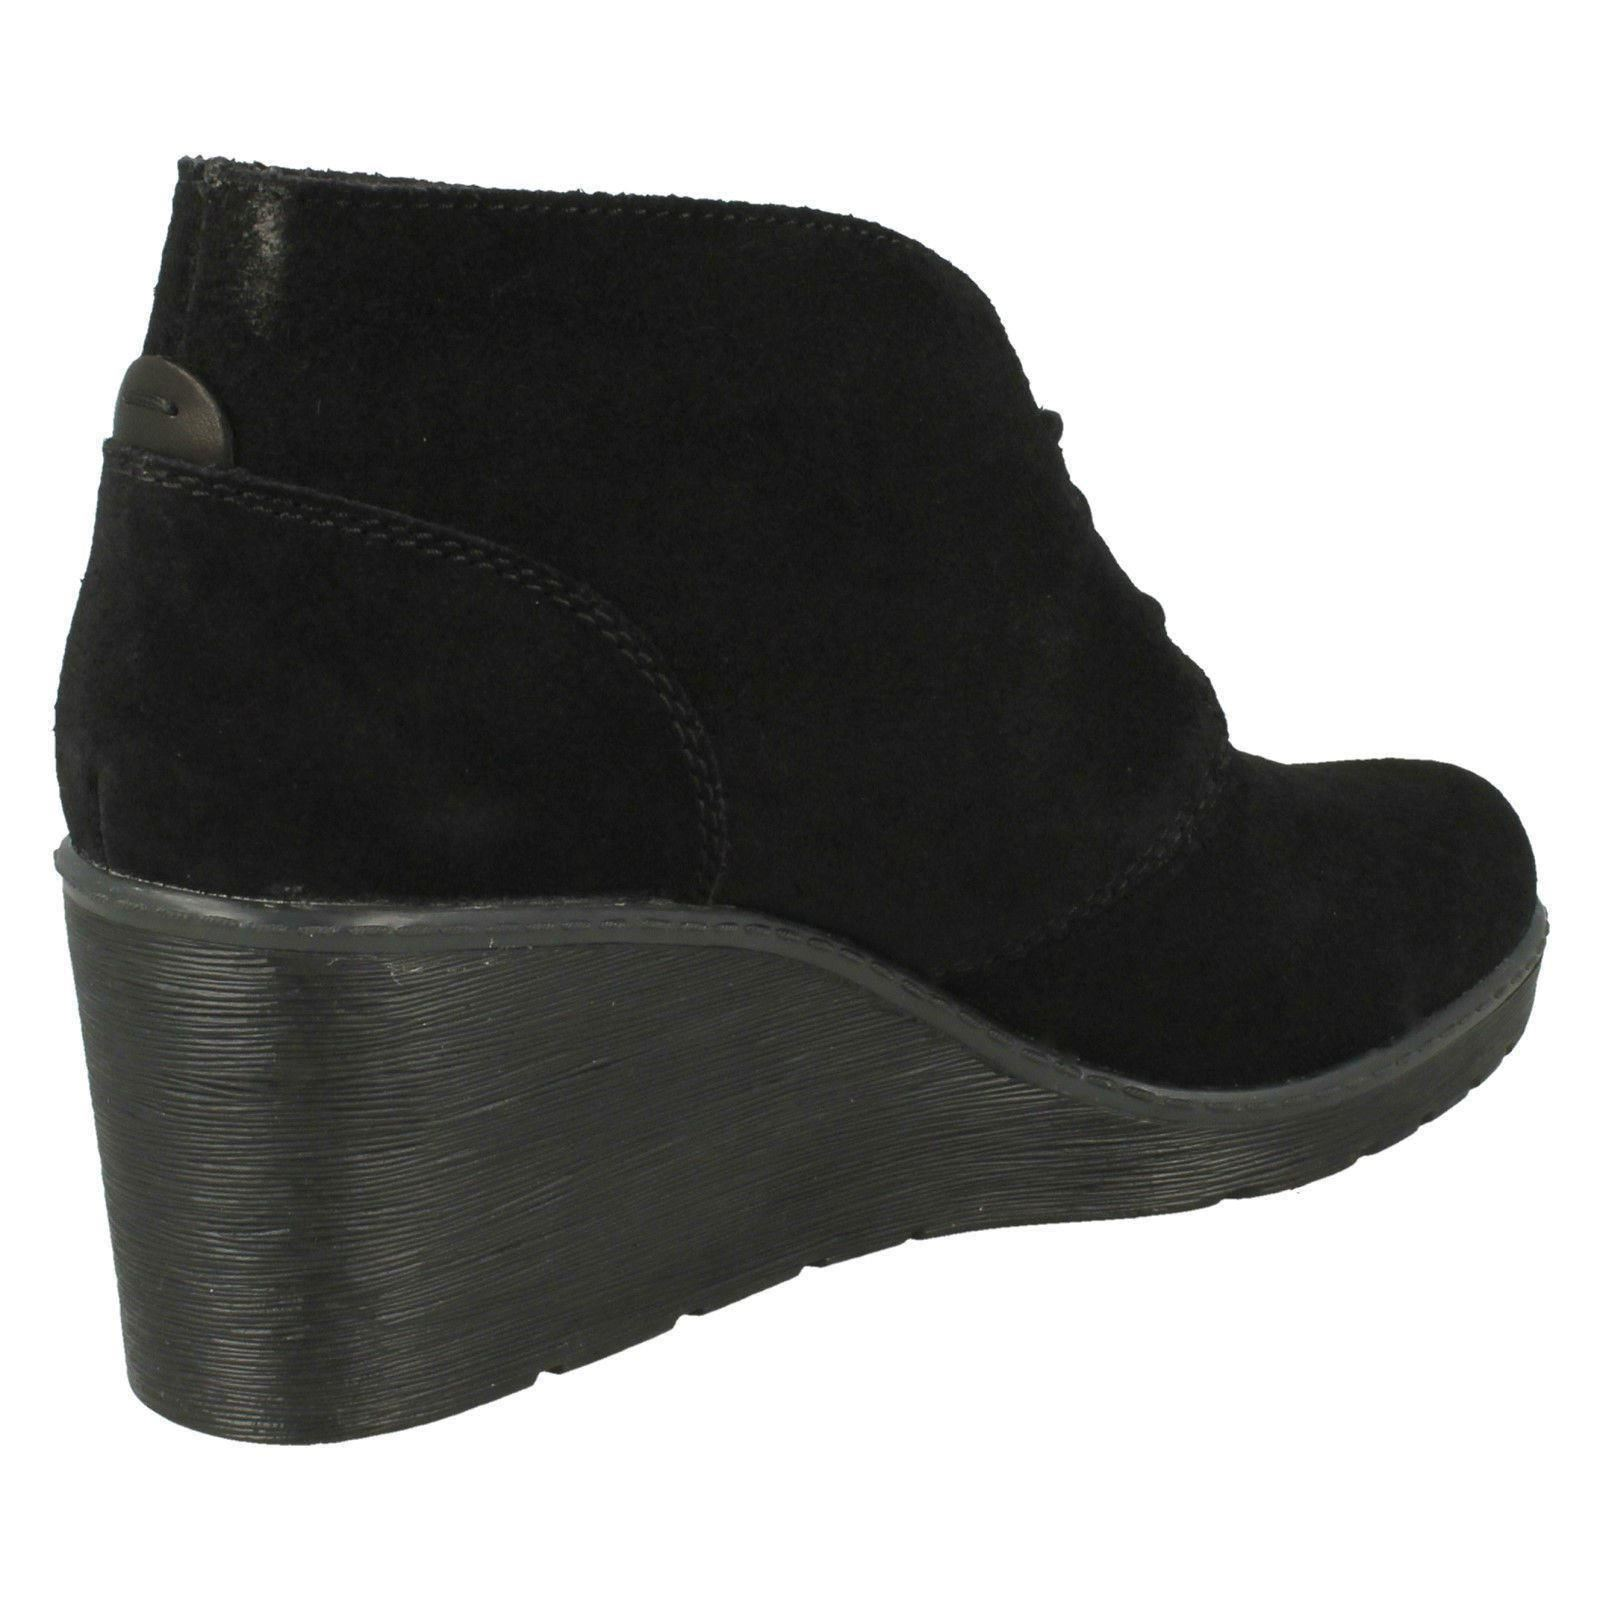 Ladies Clarks Wedge Heeled Lace Up Leather Casual Smart Ankle Boots Hazen Charm